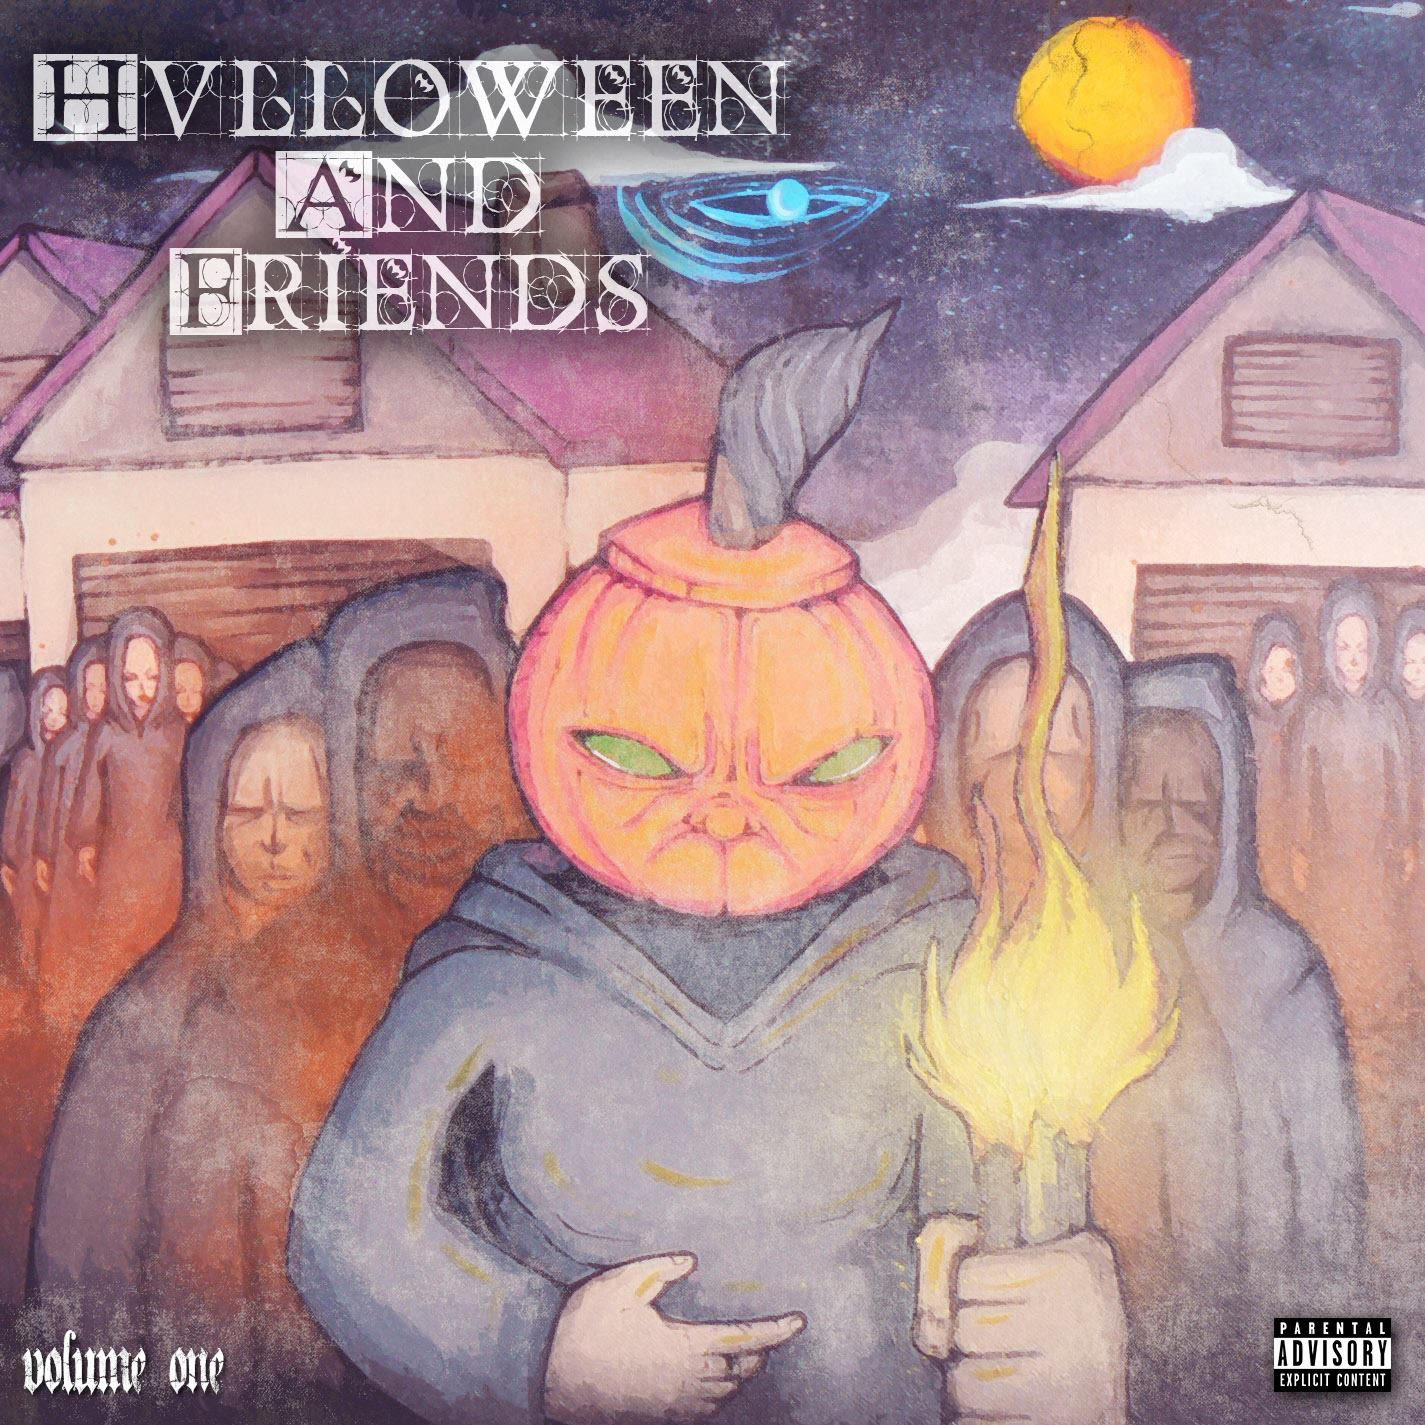 New Music: Hvlloween – Hvlloween And Friends | @Hvlloween9